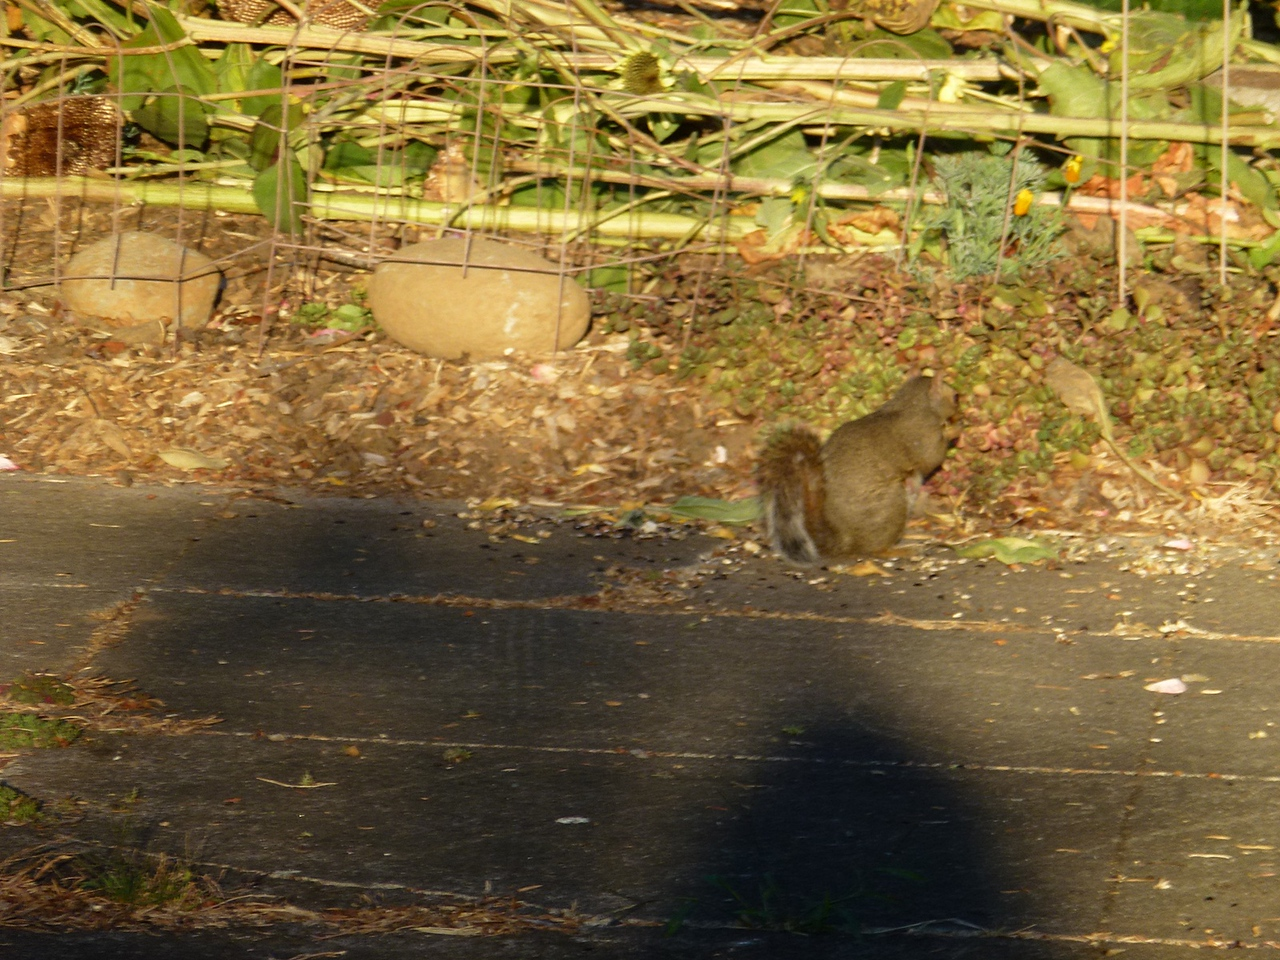 Evening walk around a few  blocks in Portland,Oregon, saw a few Squirrels on the walk, but they are hard to photograph, move so dam quick.